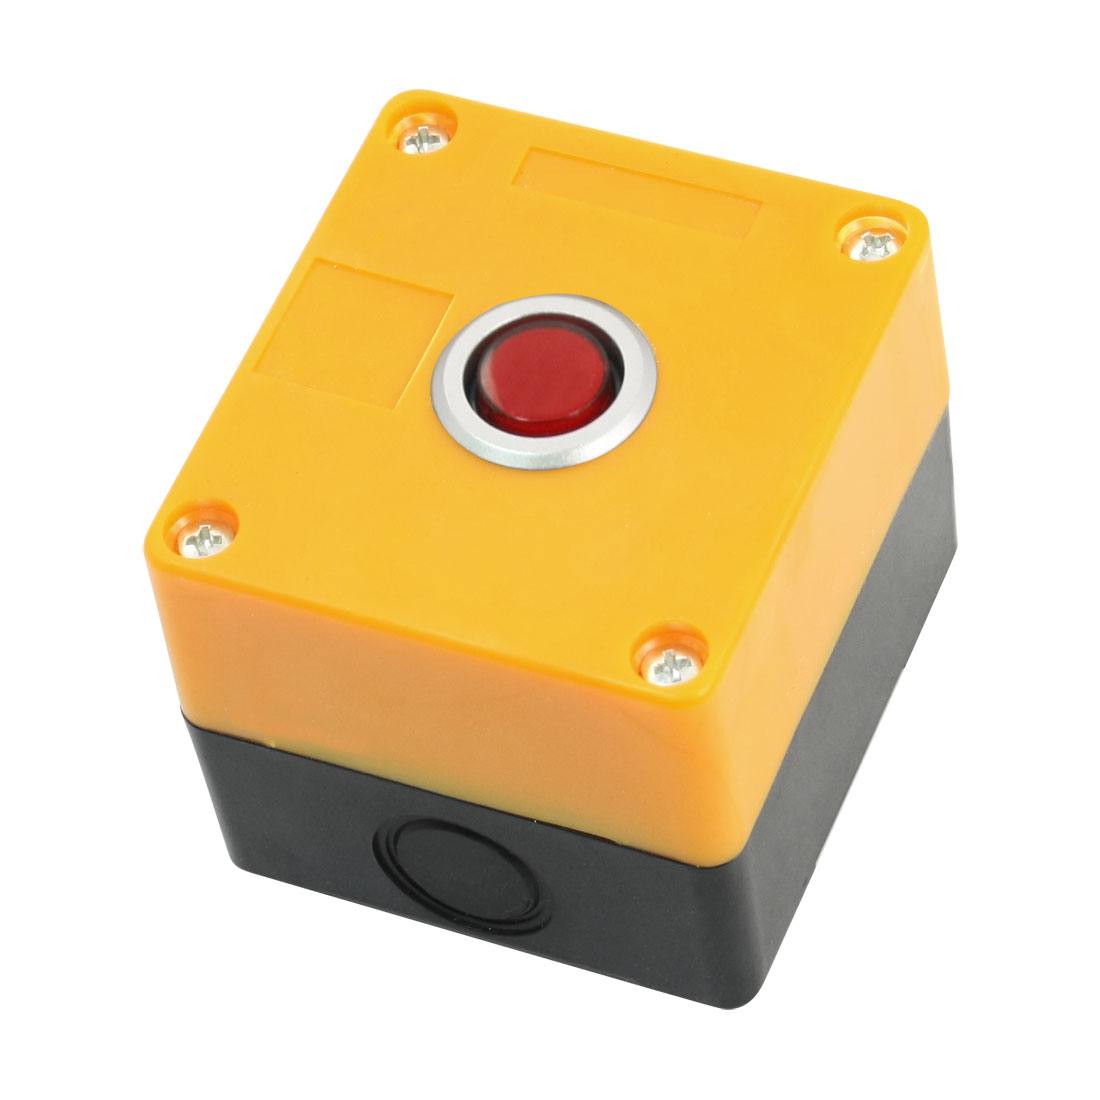 AC220V 5A SPDT 5Pin 1NO 1NC Momentary Action Red Lamp Yellow Rectangle Plastic Case Push Button Station Switch Control Box